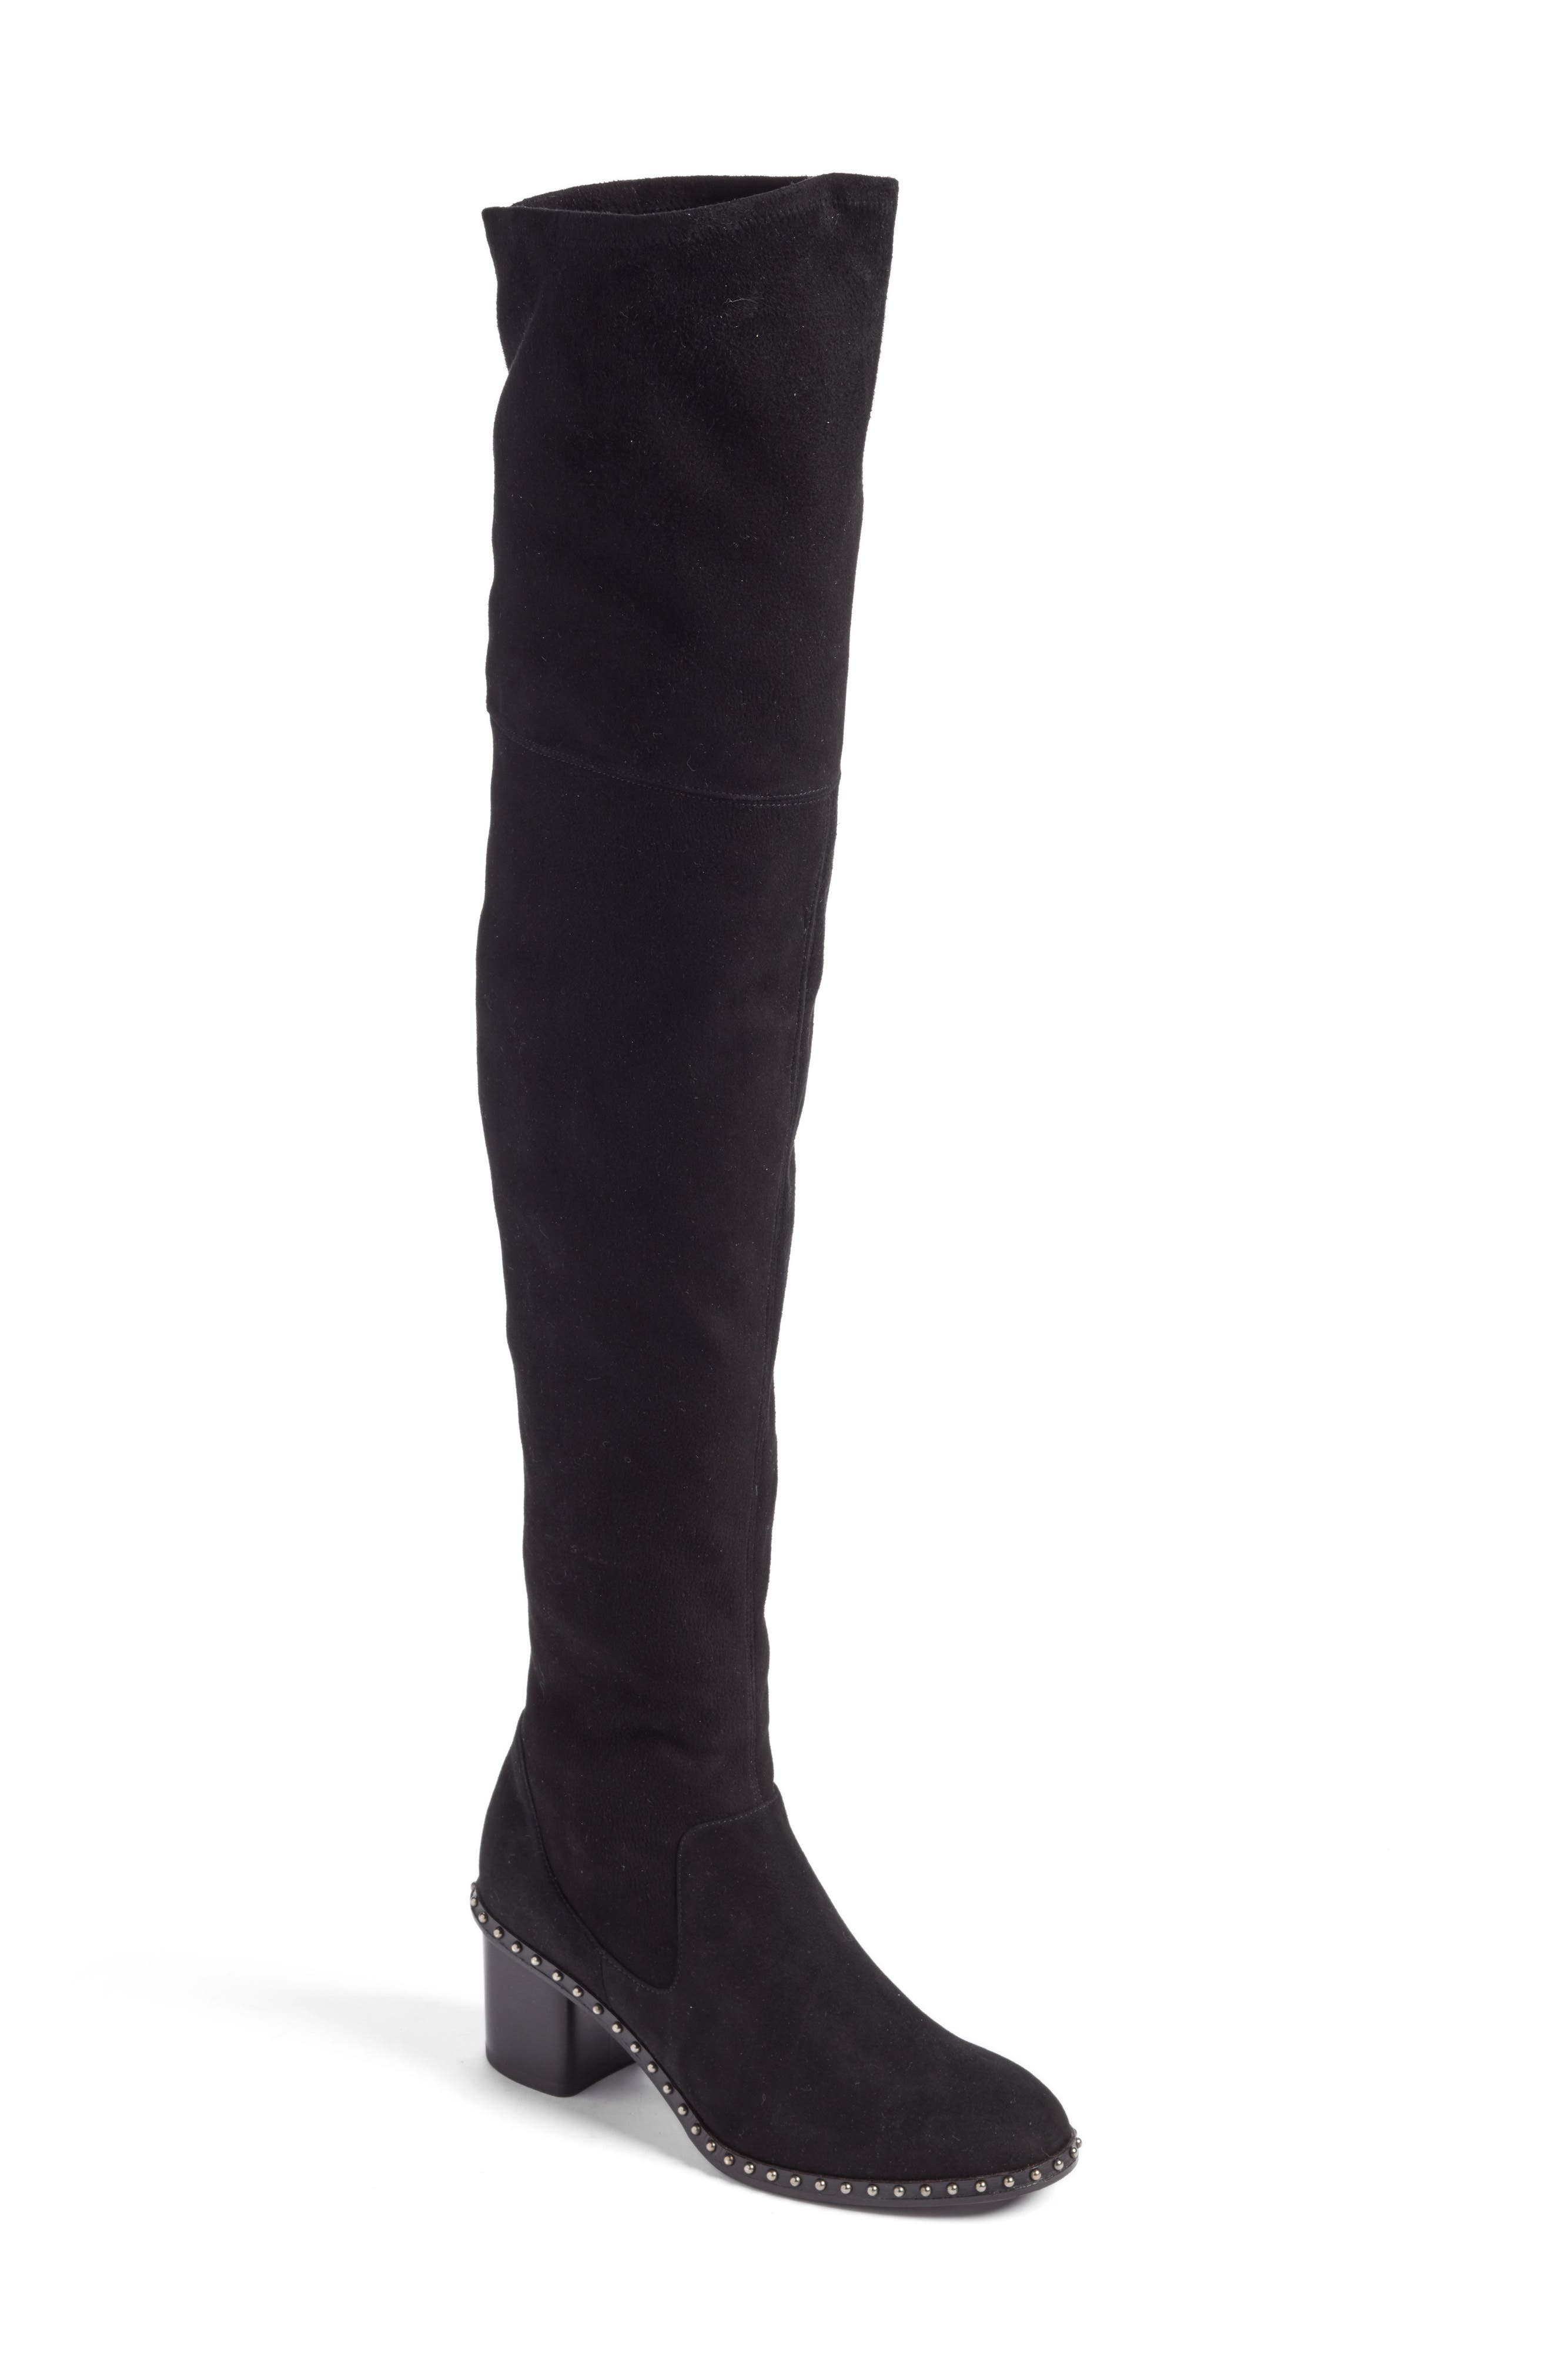 Main Image - rag & bone Rina Over the Knee Boot (Women)